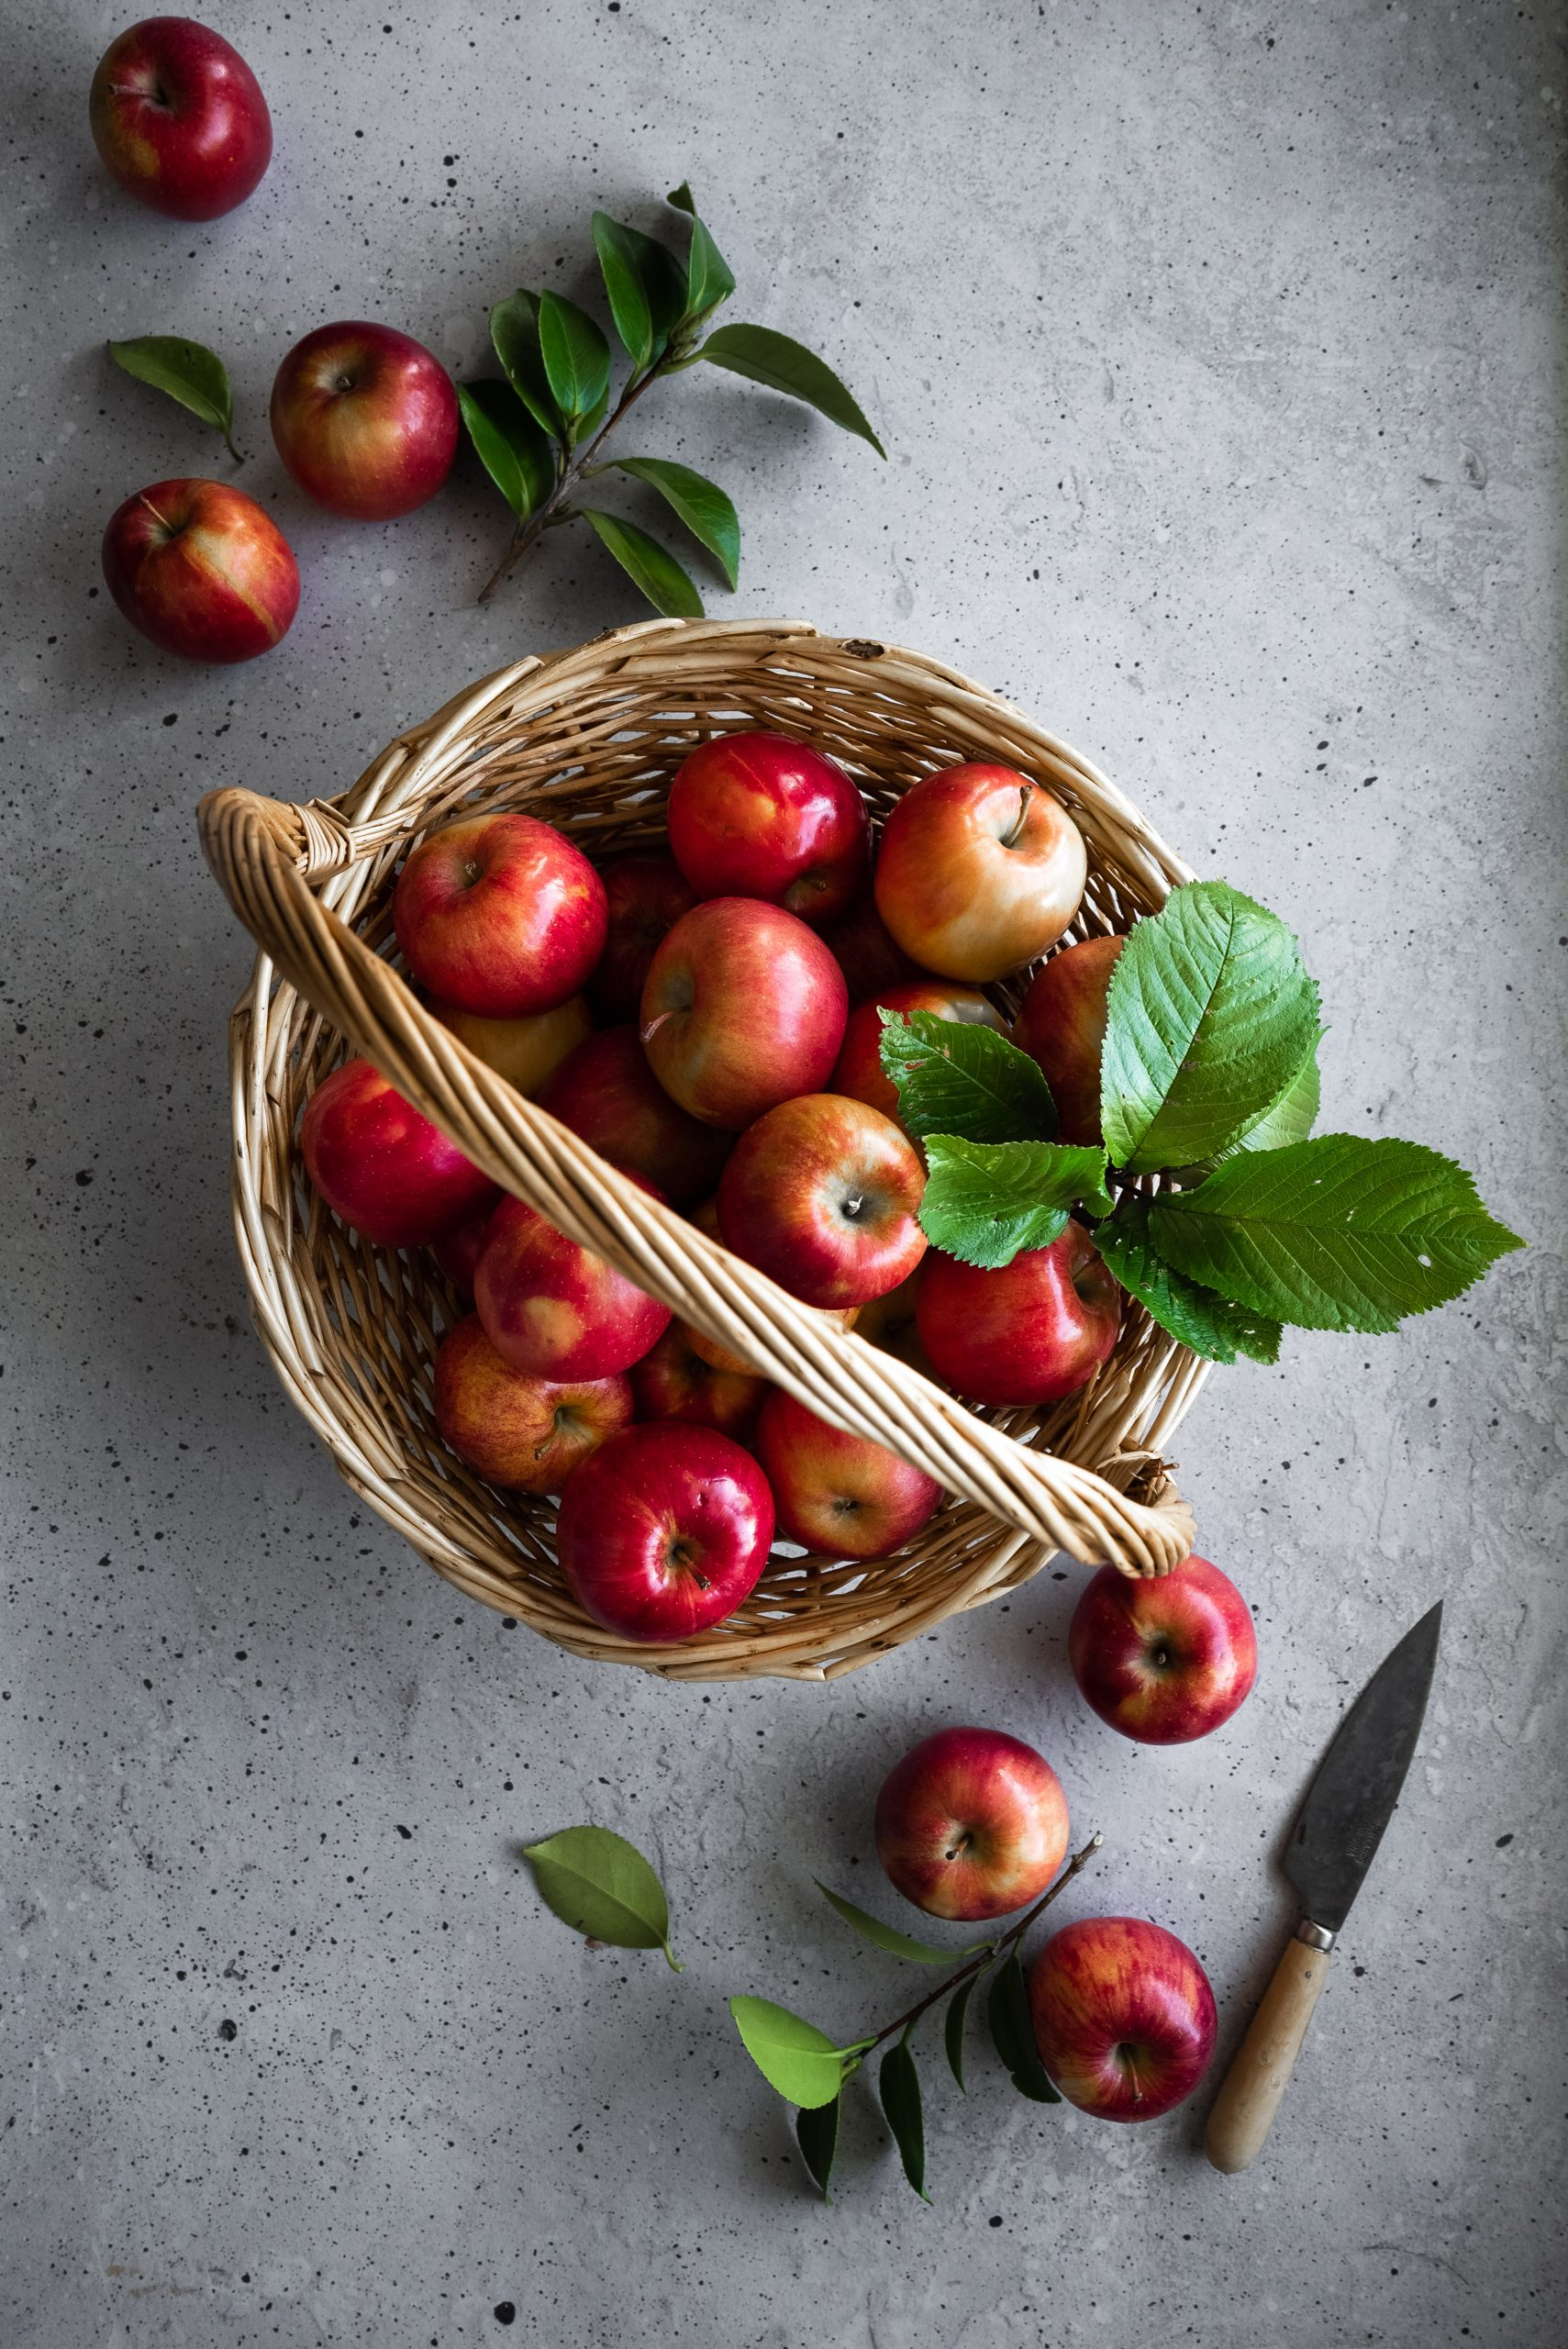 overhead image of a basket of red apples with leaves on a grey surface.